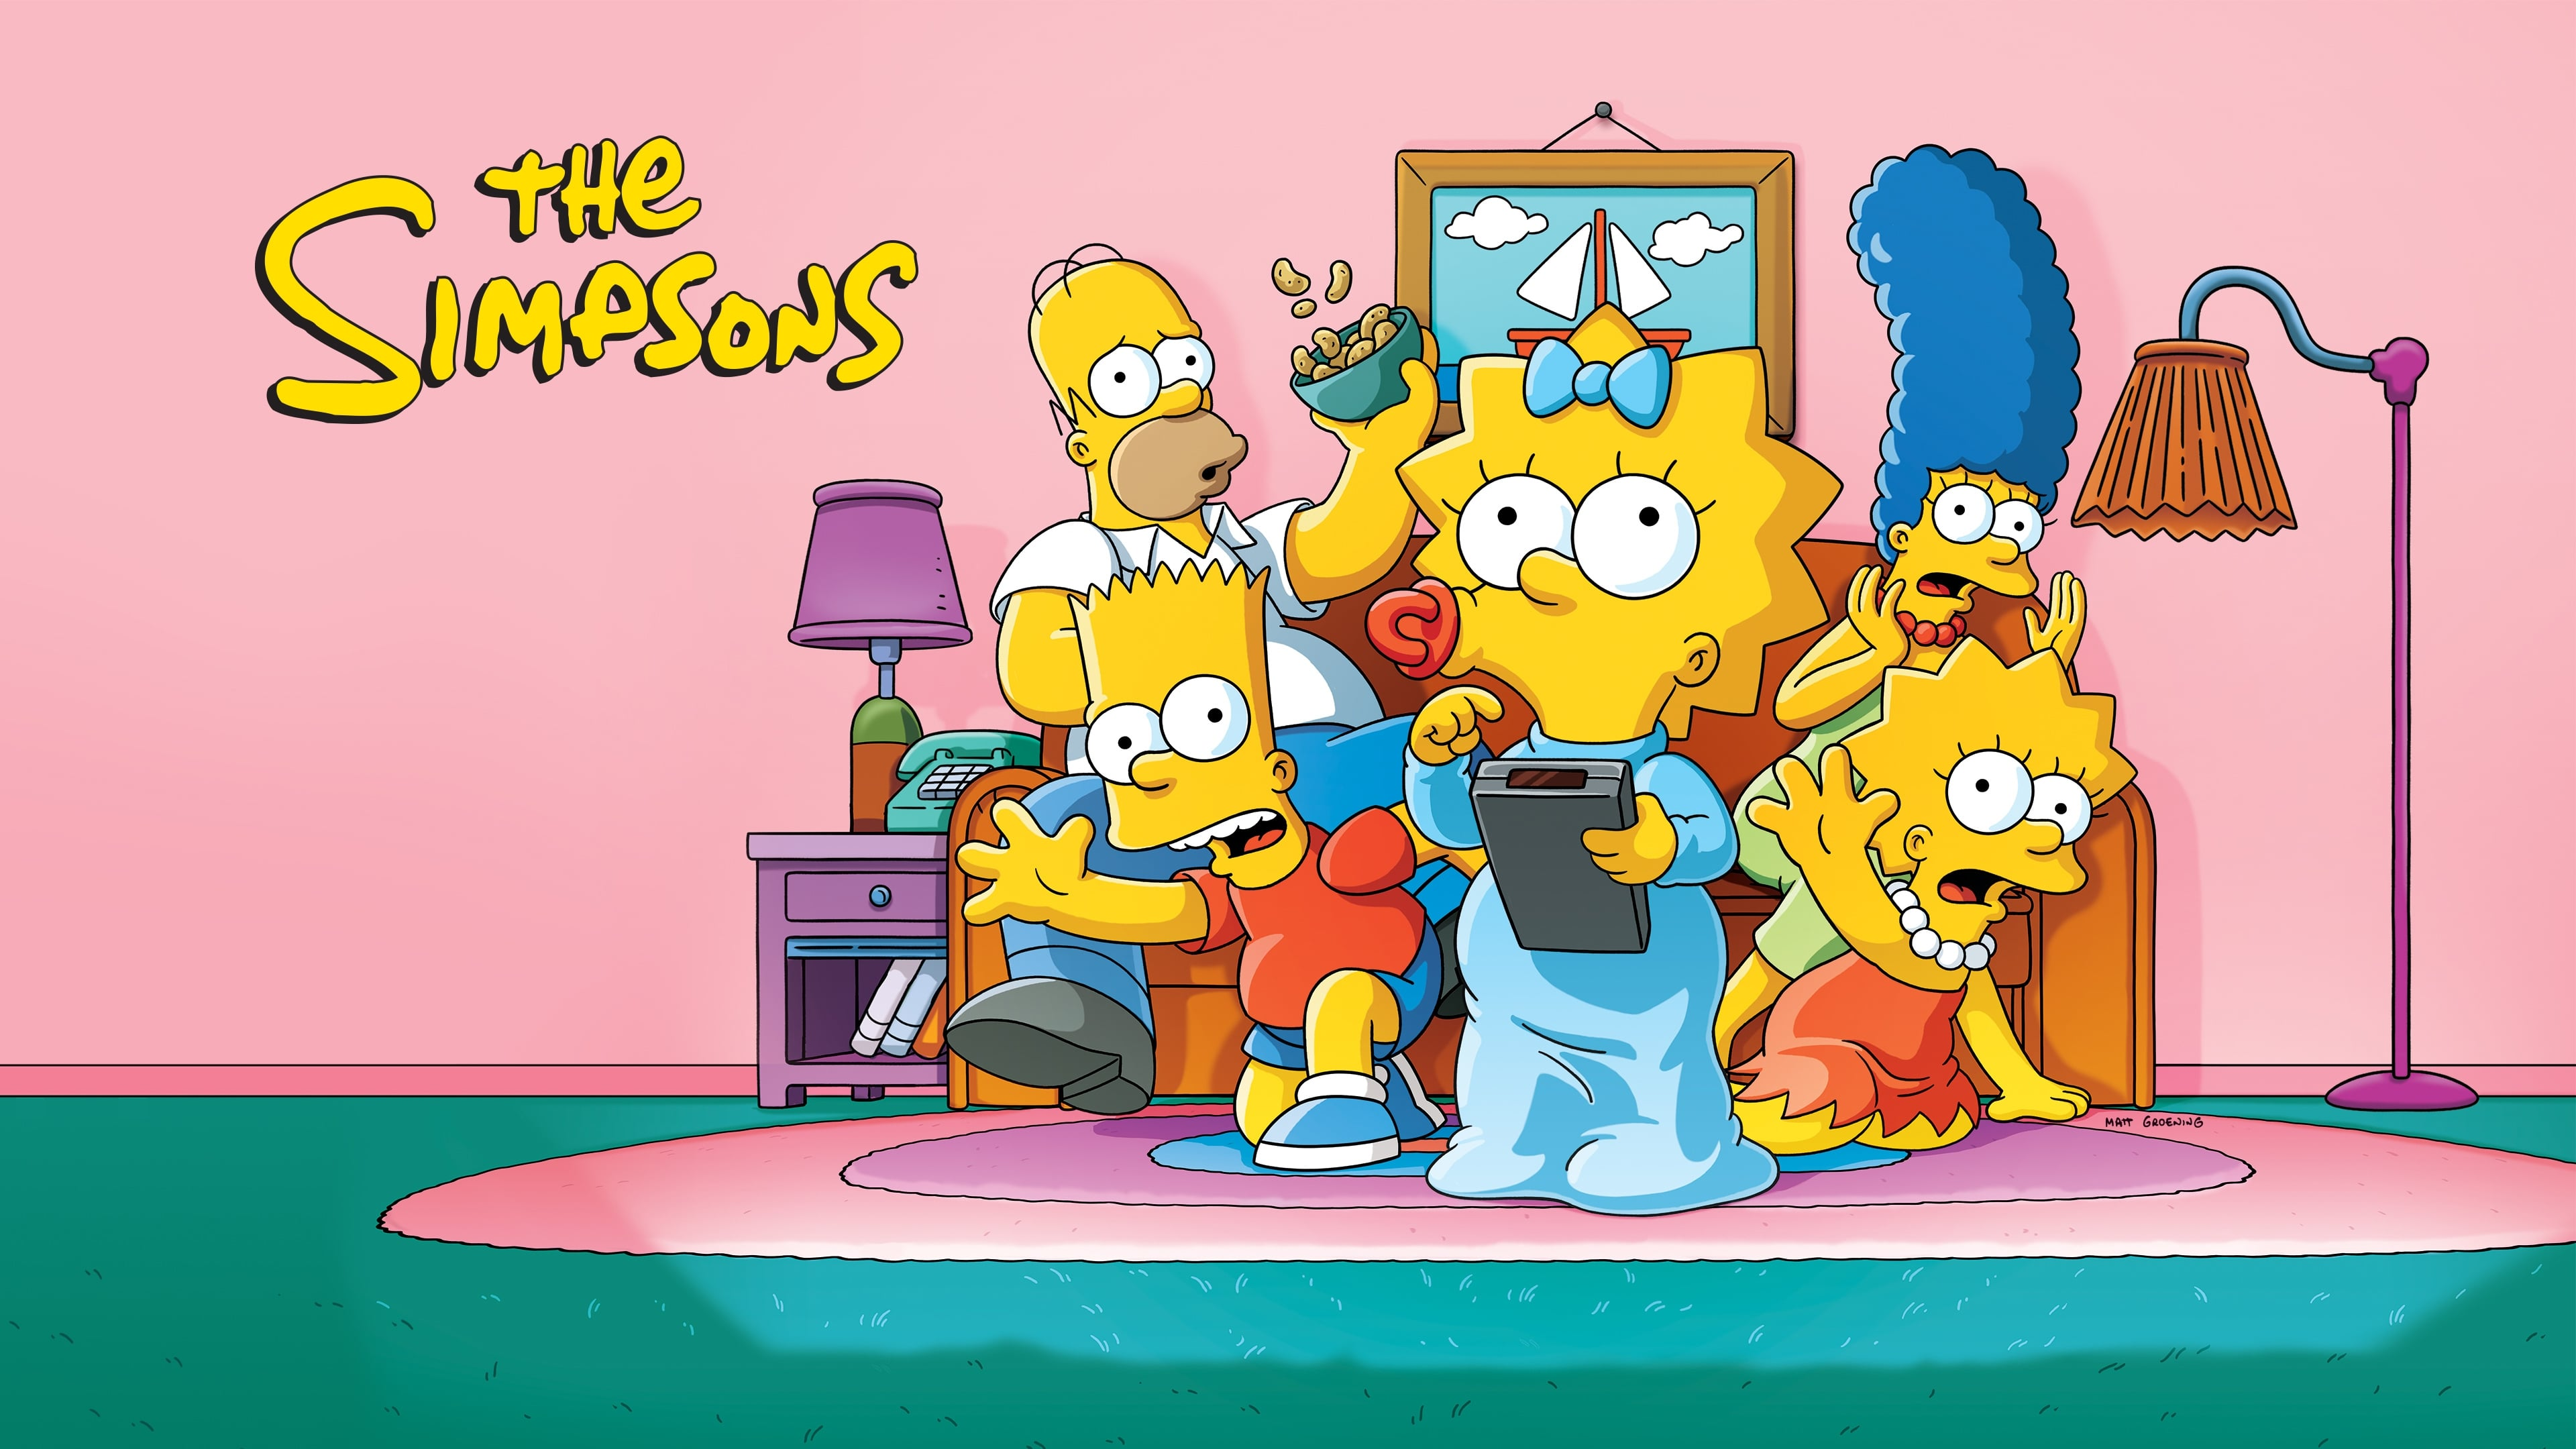 The Simpsons - Season 9